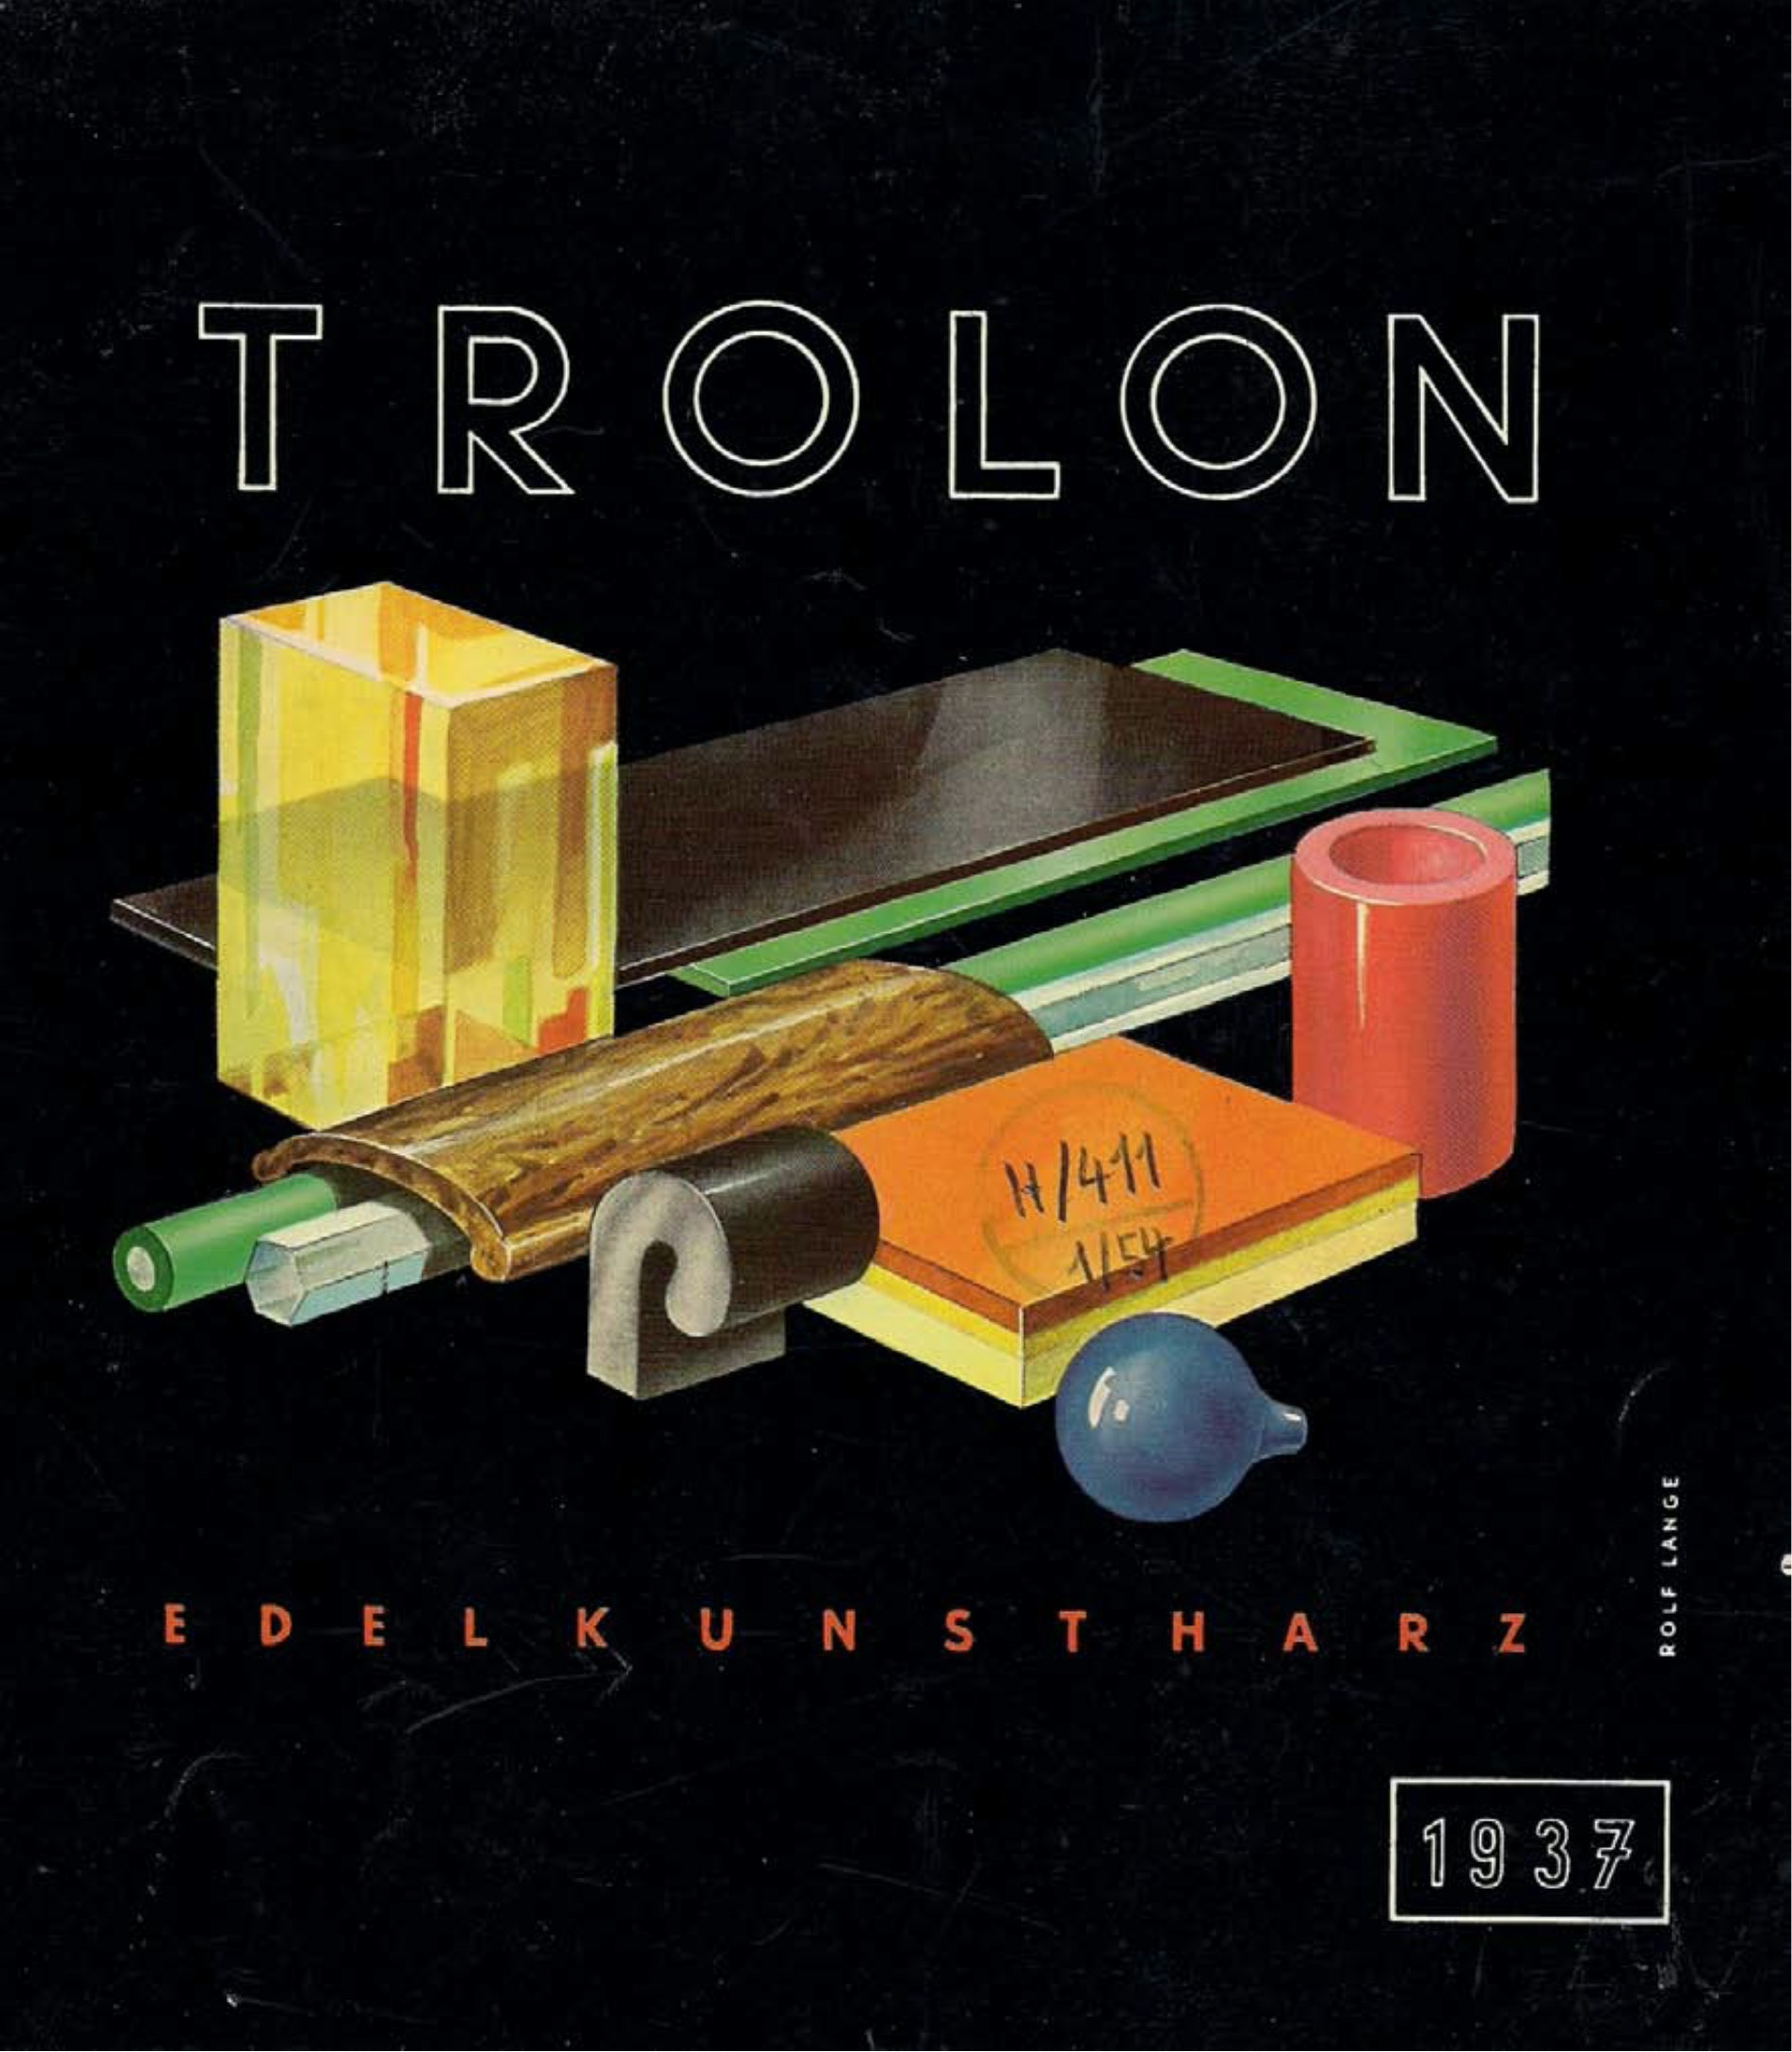 P98A Trolon Brochure 01